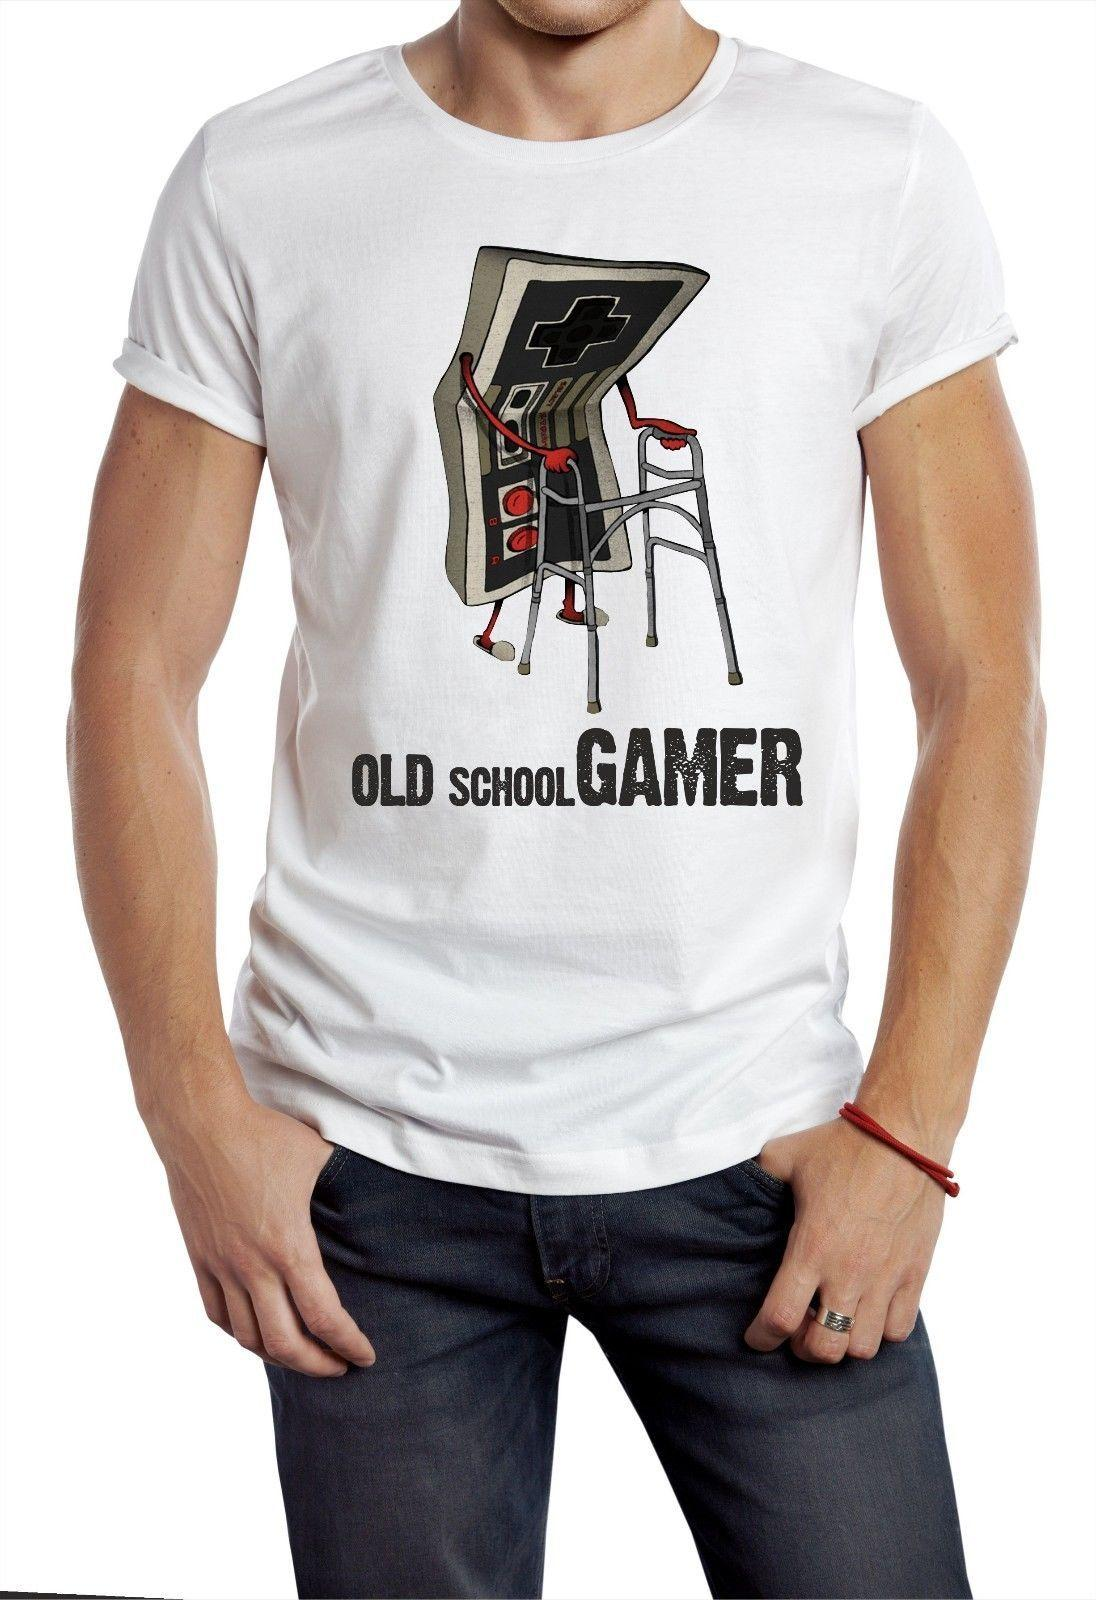 OLD SKOOL GAMER T-SHIRT THE FLASH TV RETRO CONTOLLER 80S 90S CONSOLE GEEK NERD 1